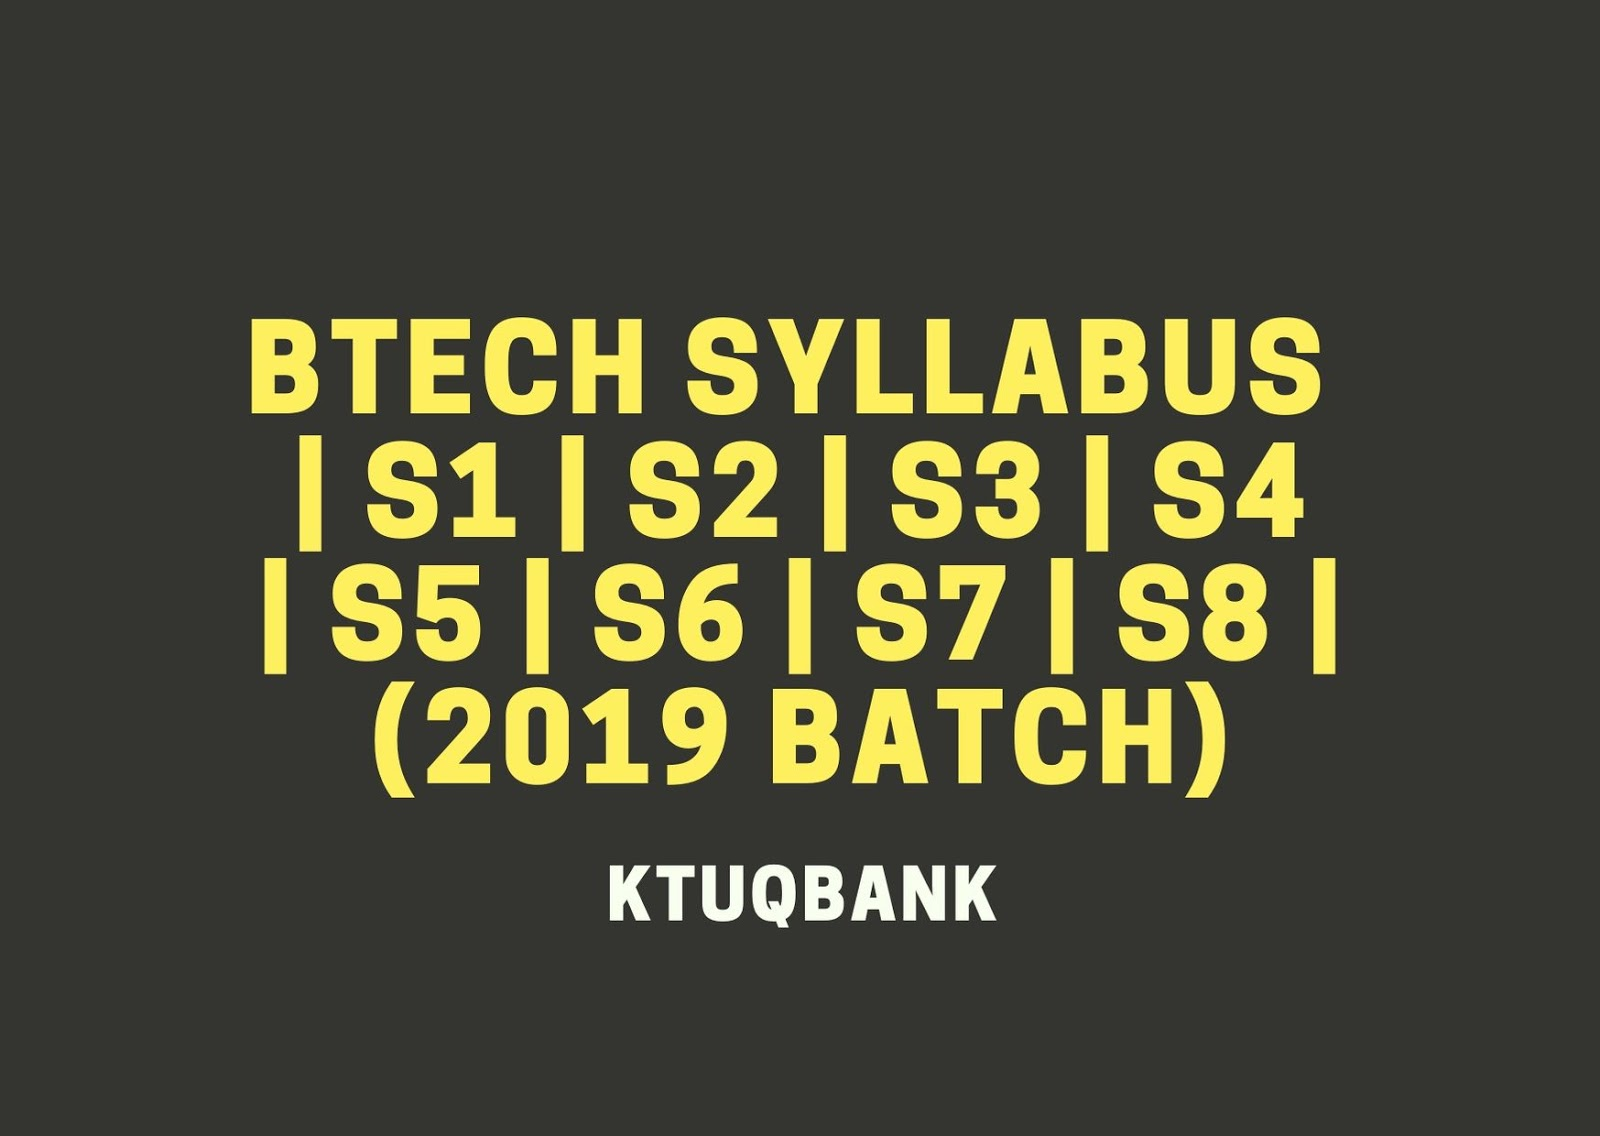 BTech Syllabus | S1 | S2 | S3 | S4 | S5 | S6 | S7 | S8 | (2019 Batch)